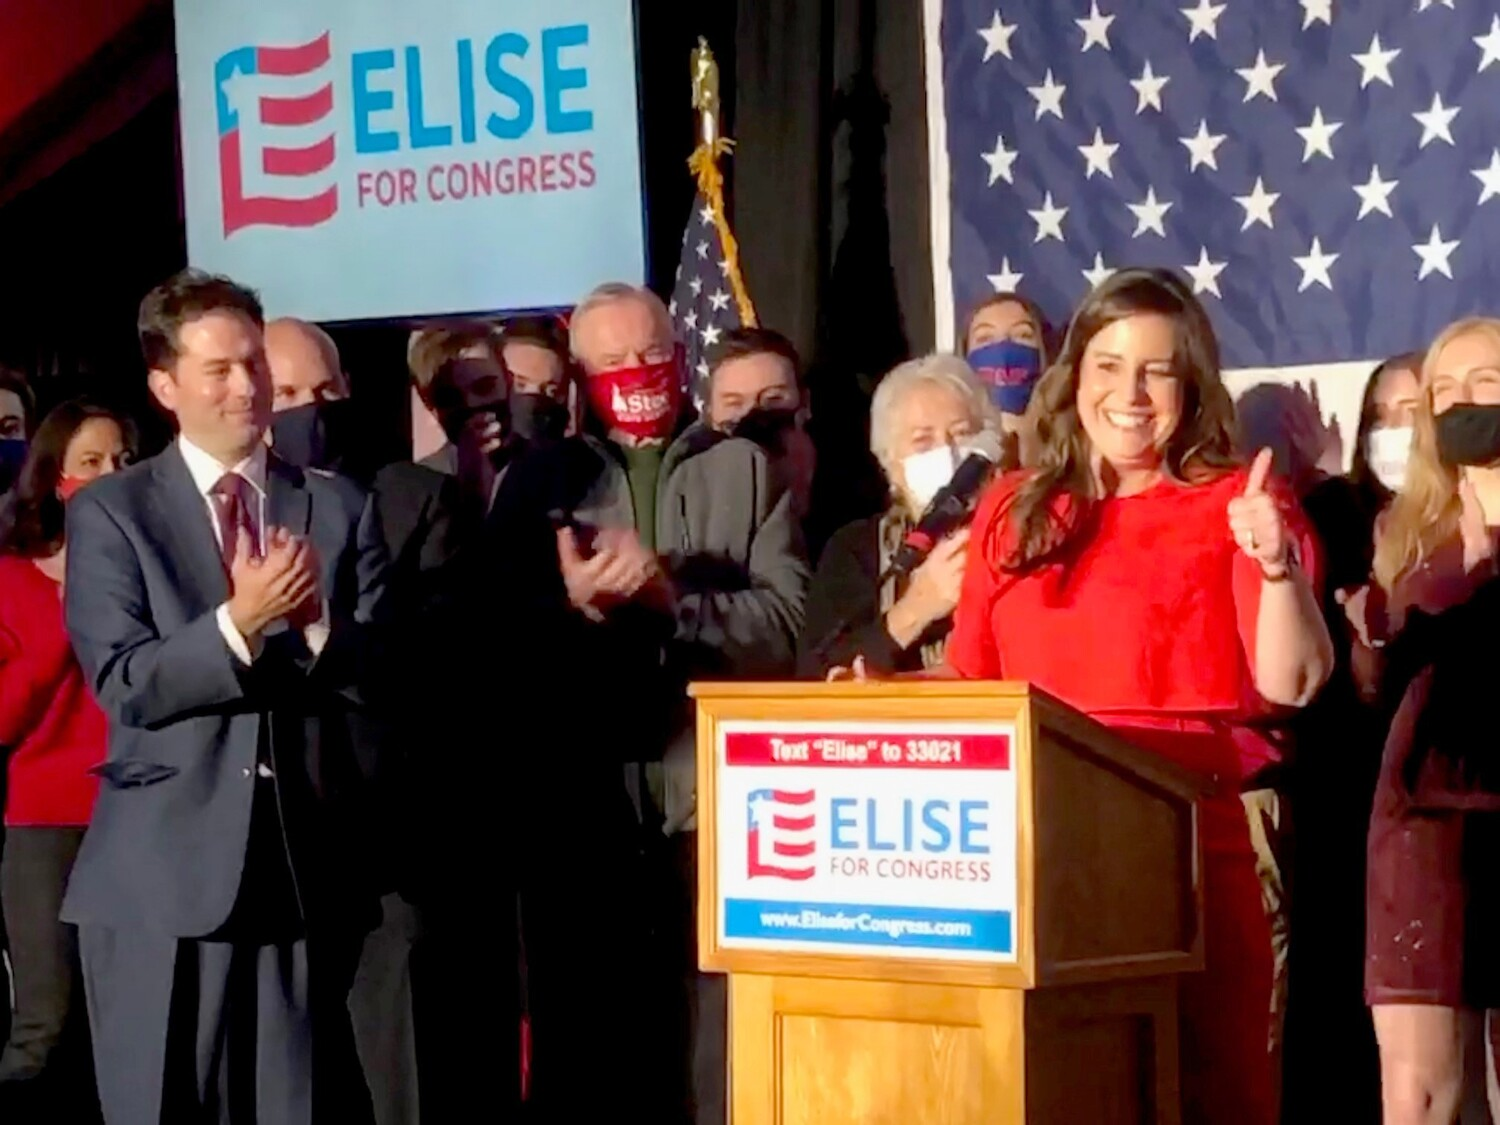 Rep. Elise Stefanik wins fourth term in Congress | NCPR News